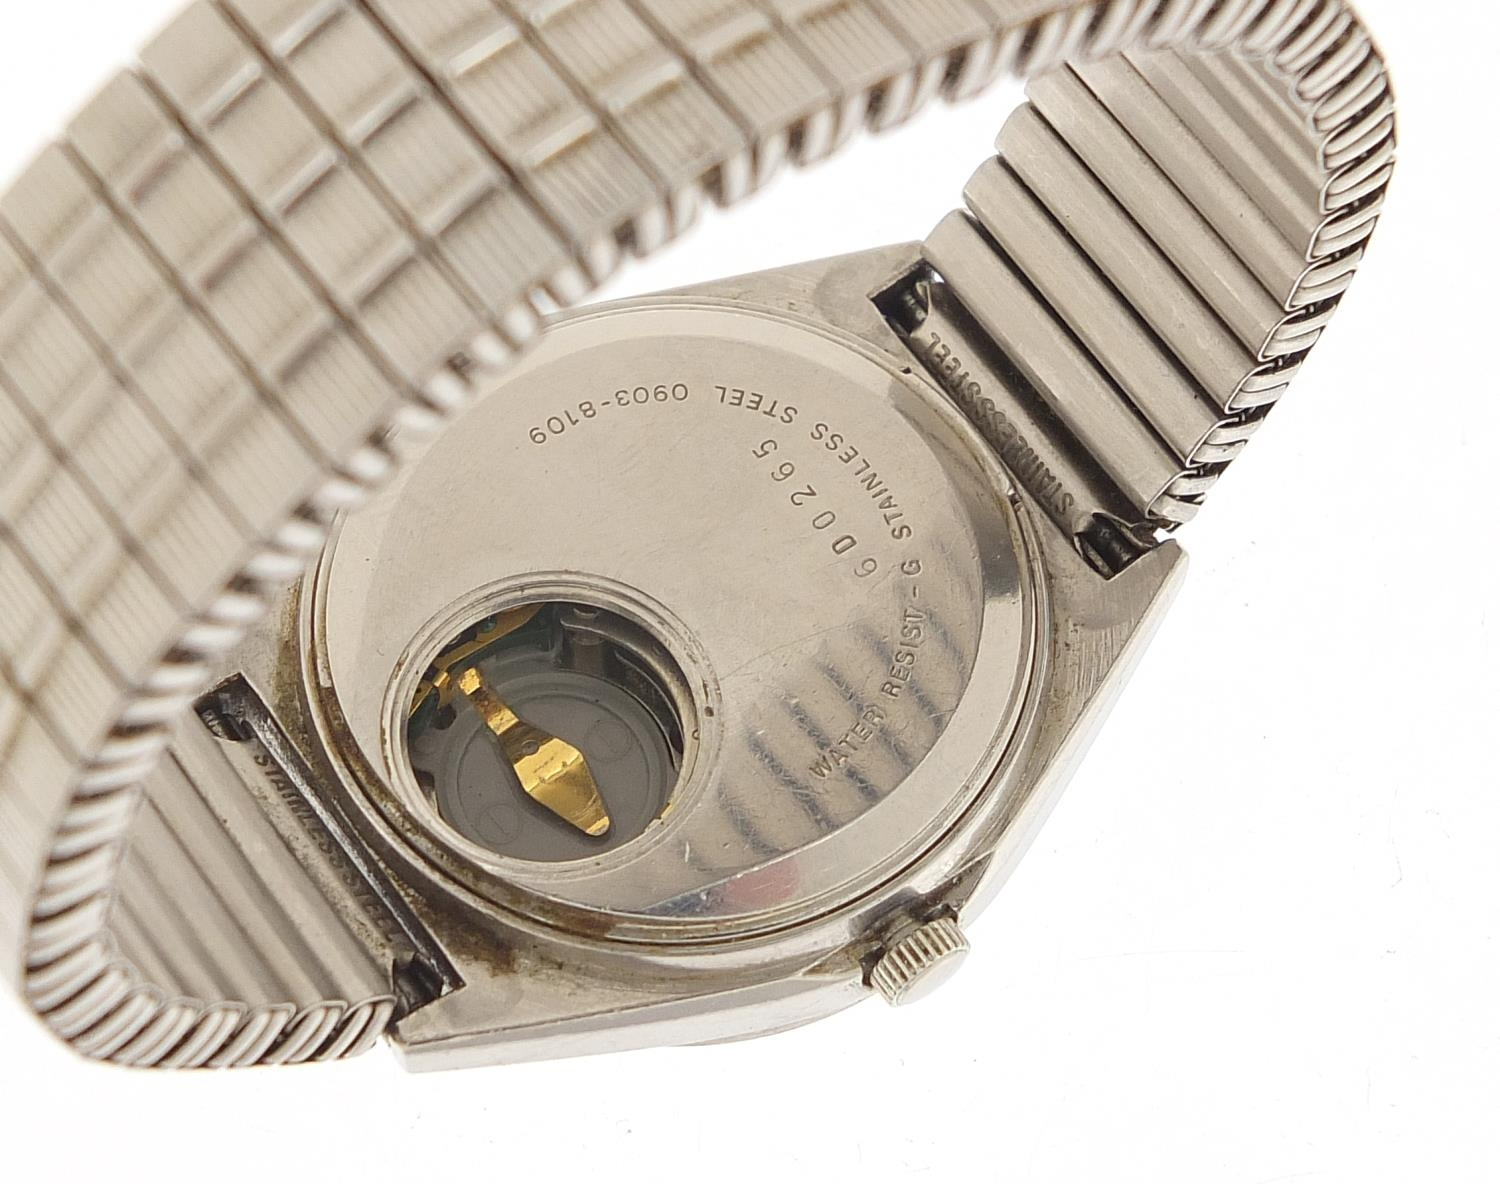 Seiko, vintage gentlemen's quartz wristwatch with day date aperture, numbered 6D0265, 35mm in - Image 3 of 6